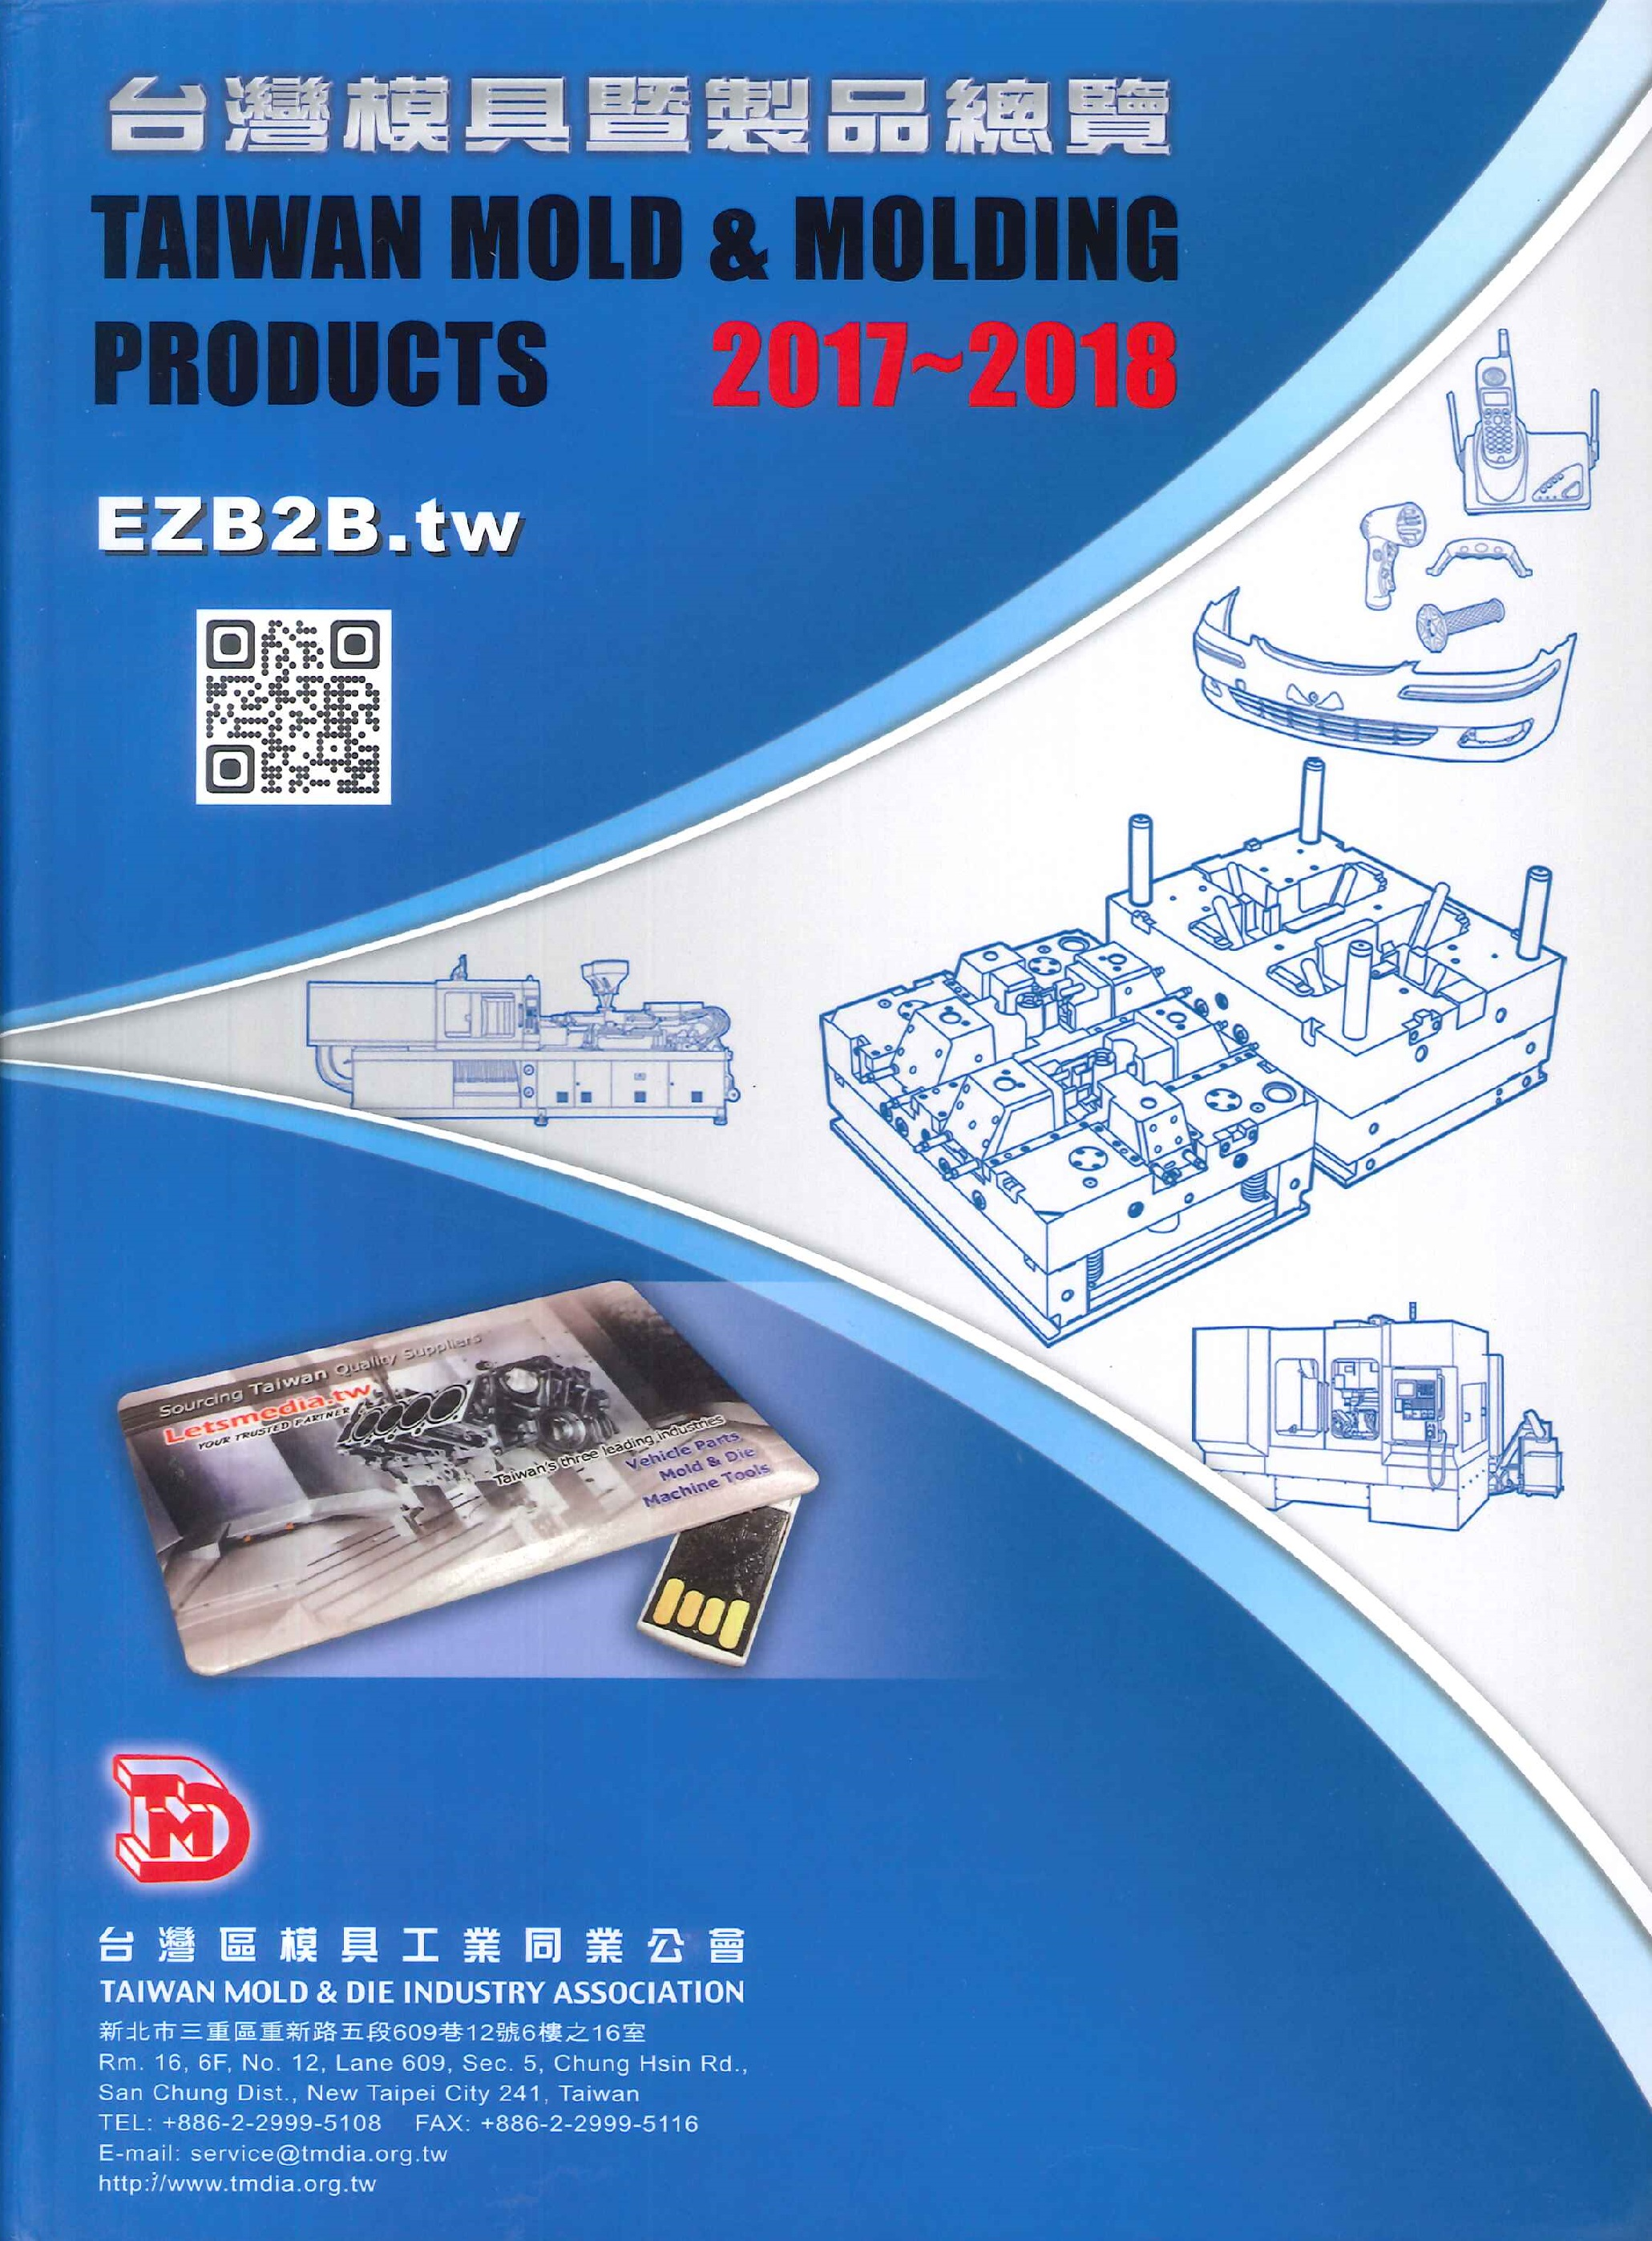 台灣模具暨製品總覽.2017-2018=Taiwan mold & molding products